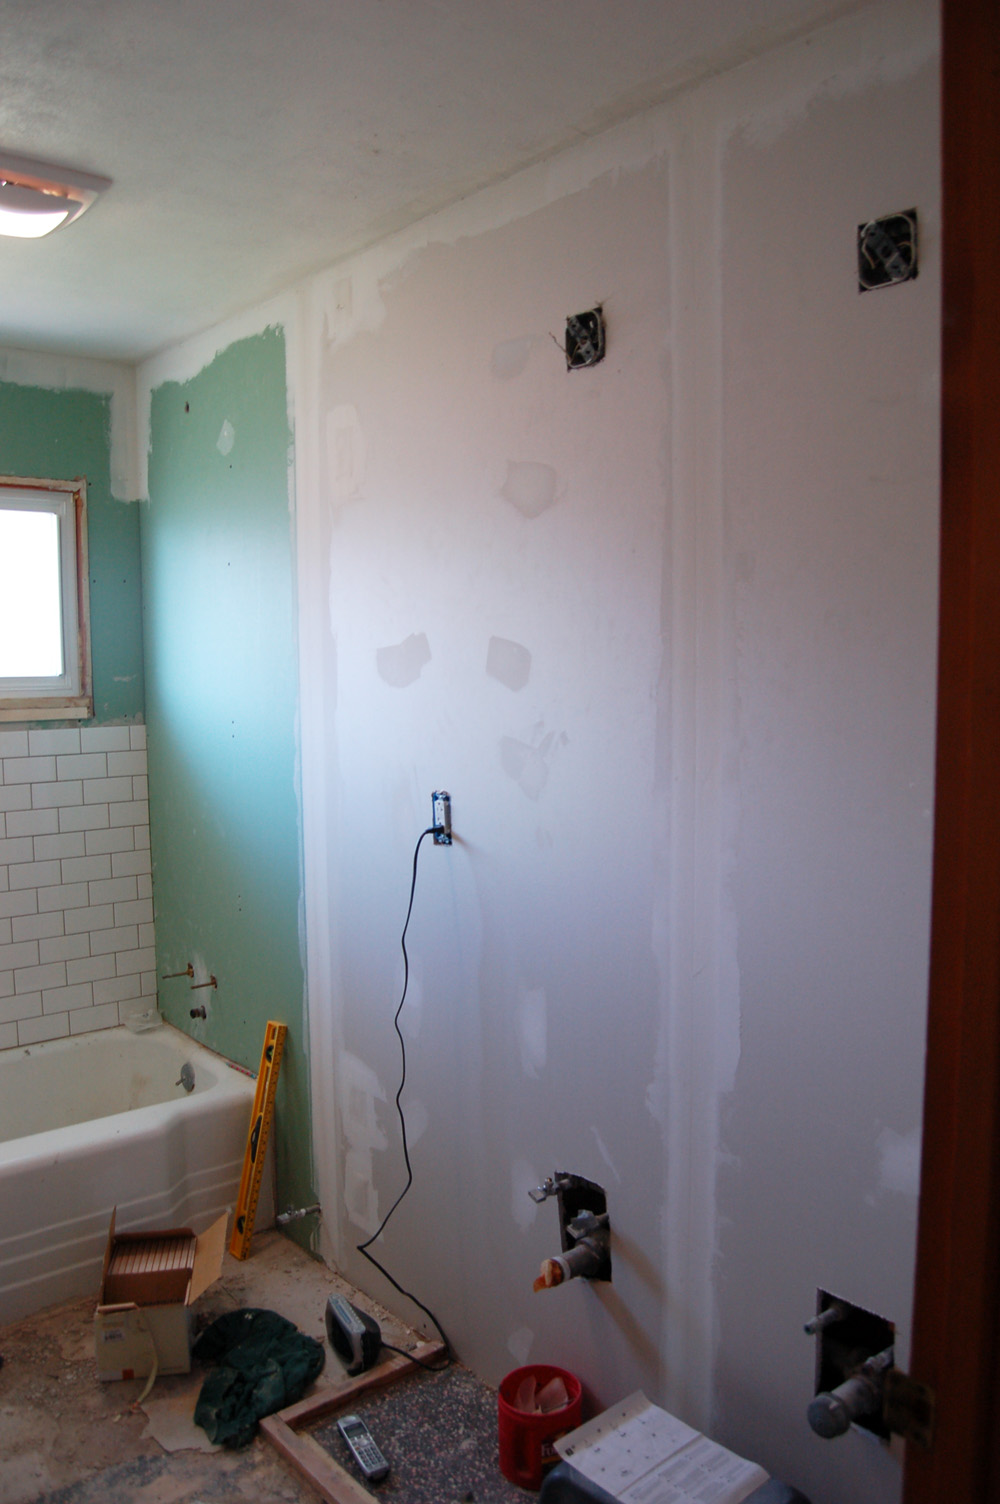 The Almost Perfectionist The Bathroom - Green board in bathroom